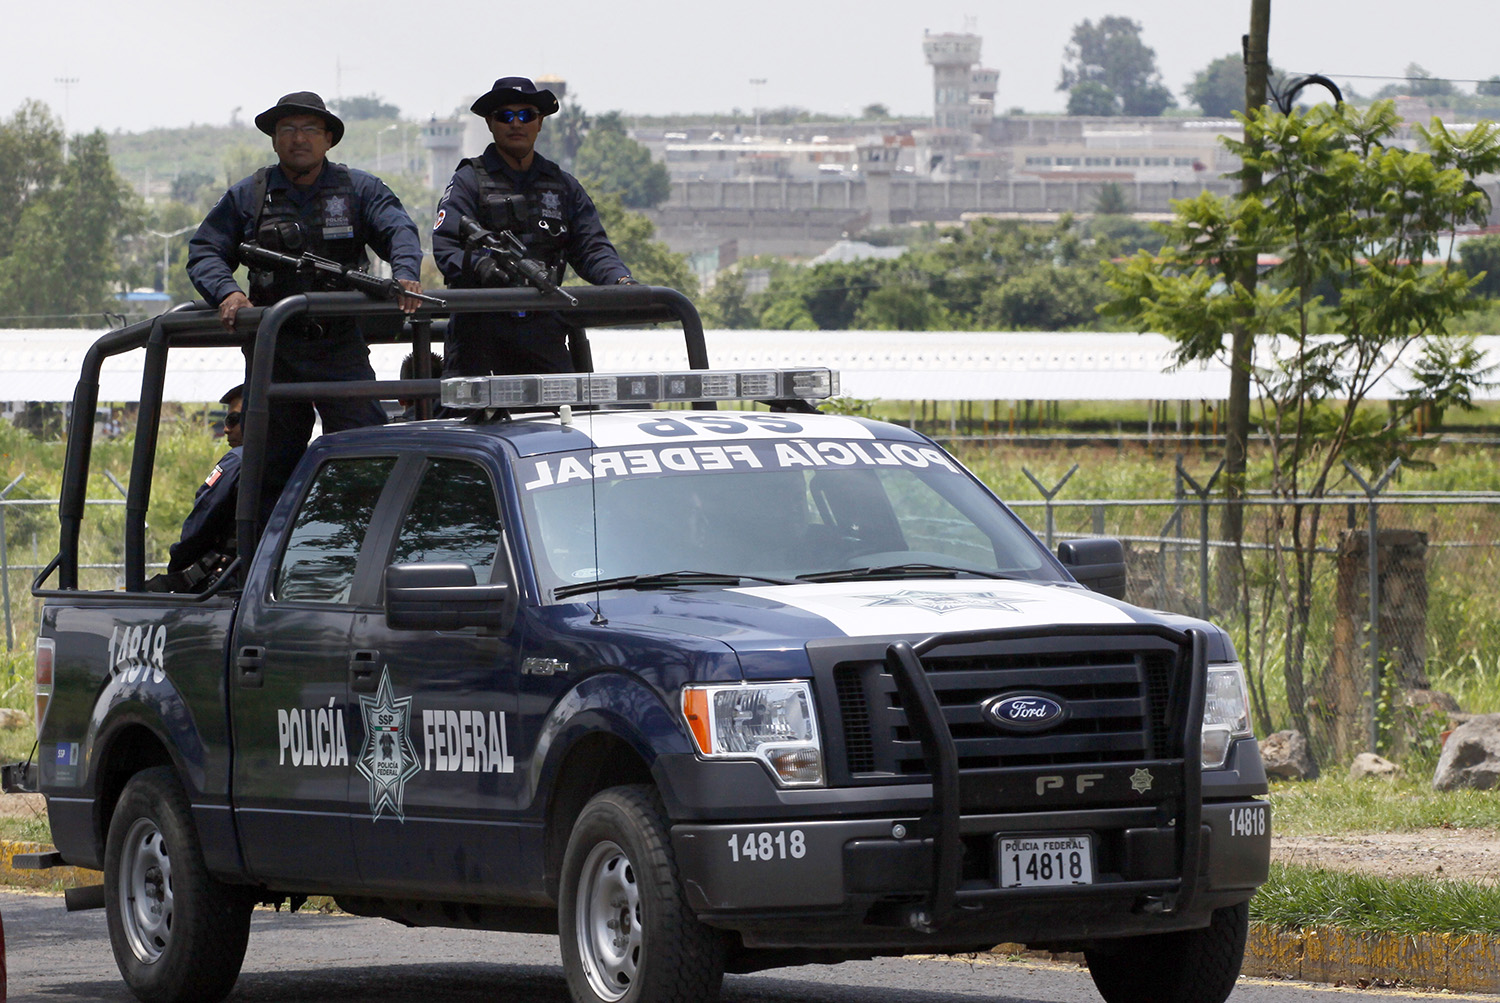 A unit of the Mexican Federal Police patrols the surroundings of the Puente Grande State prison (background) in Zapotlanejo, Jalisco State, Mexico, on 9 August, 2013 where former top Mexican cartel boss Rafael Caro Quintero -- who masterminded the kidnap and murder of a US anti-drug agent in 1985 -- was informed early Friday that a court ordered his release. A criminal court in the western state of Jalisco approved Rafael Caro Quintero's release on August 7, a court official who asked not to be identified told AFP. Caro Quintero has served 28 years in prison for the 1985 murder of US Drug Enforcement Administration special agent Enrique Camarena, who was kidnapped in Guadalajara and tortured and murdered. HECTOR GUERRERO/AFP/Getty Images